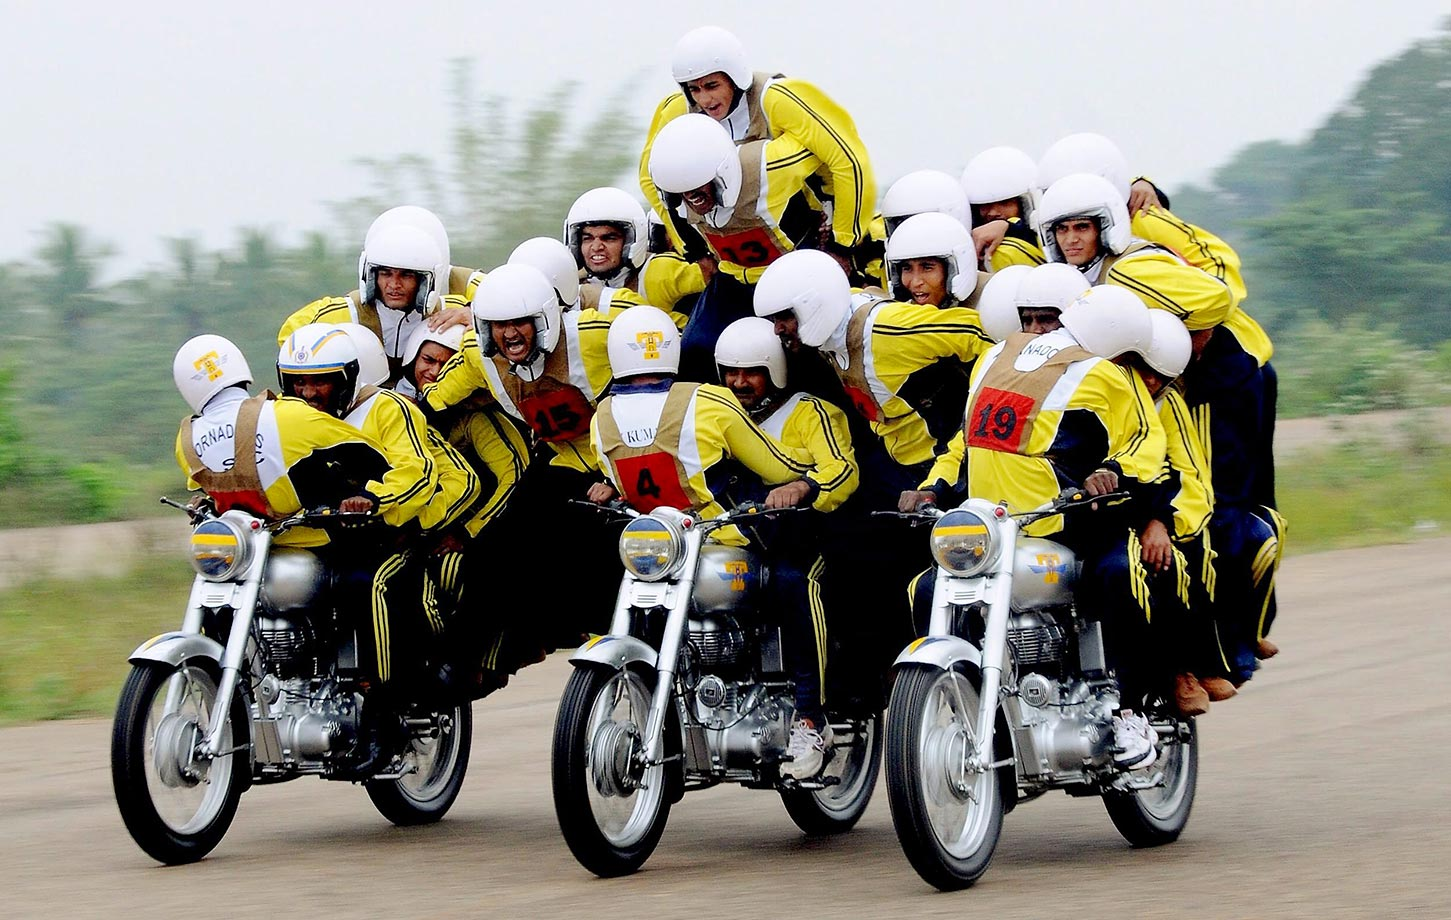 The Tornadoes, members of the Motor display team from Army Service Corps in India, attempt to set a World record for fastest moving human pyramid. The Tornadoes set the record with 32 men on three 500cc motorcycles covering a distance of 1Km.